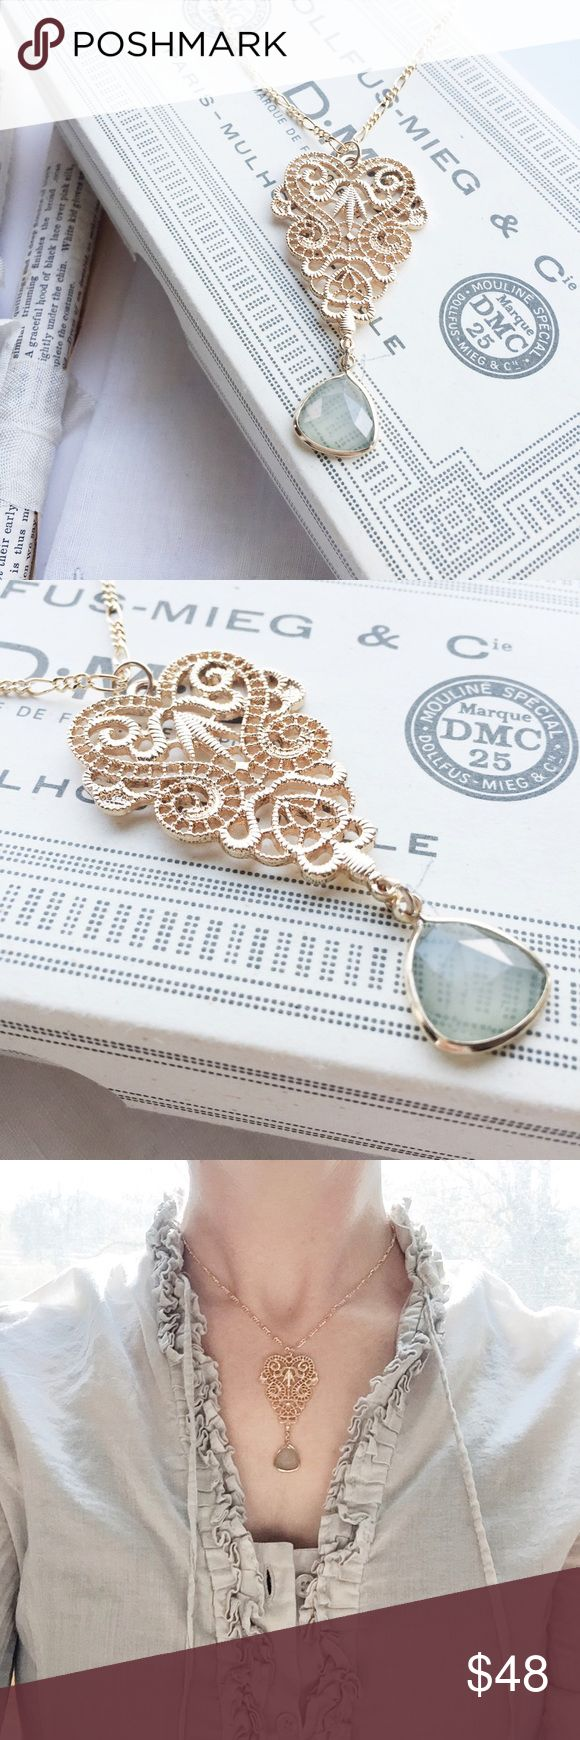 """gilded lace necklace Like a perfect specimen of lace, forever transformed into a gilded heirloom. So serene & lovely with a faceted aqua droplet and dainty link chain. Matte Gold.  Measures: hang length 